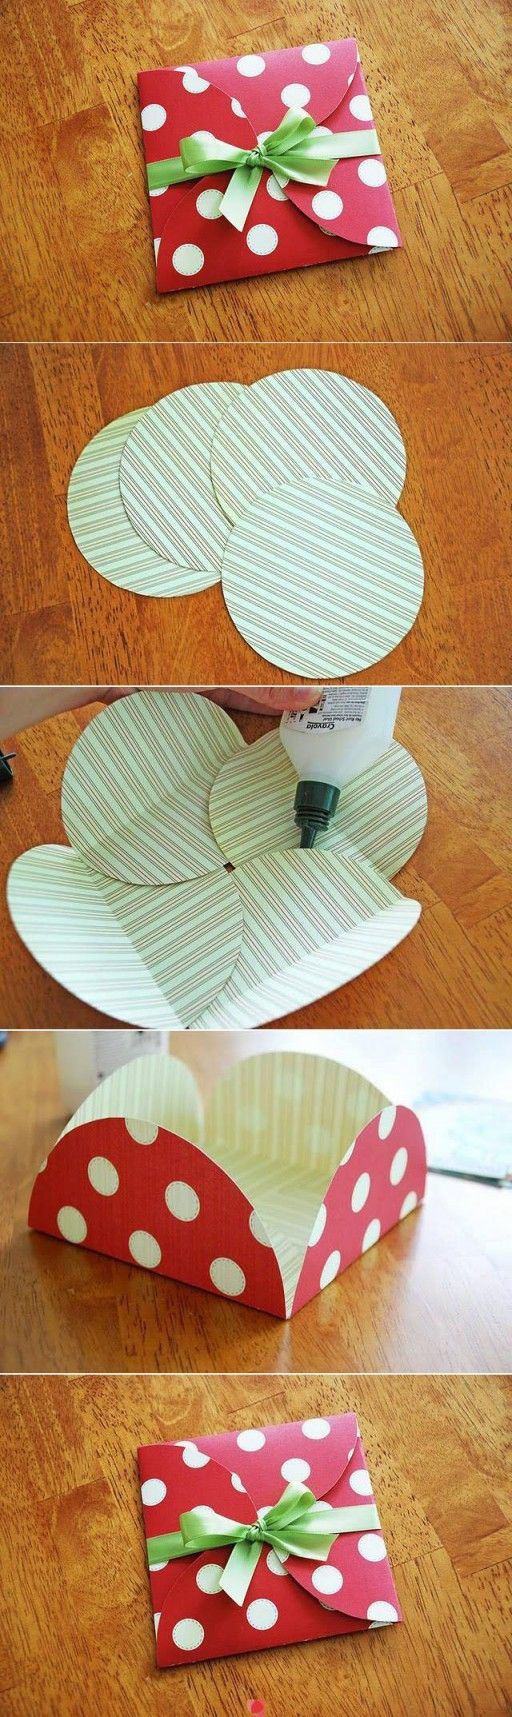 How to make beautiful DIY gift envelope step by step